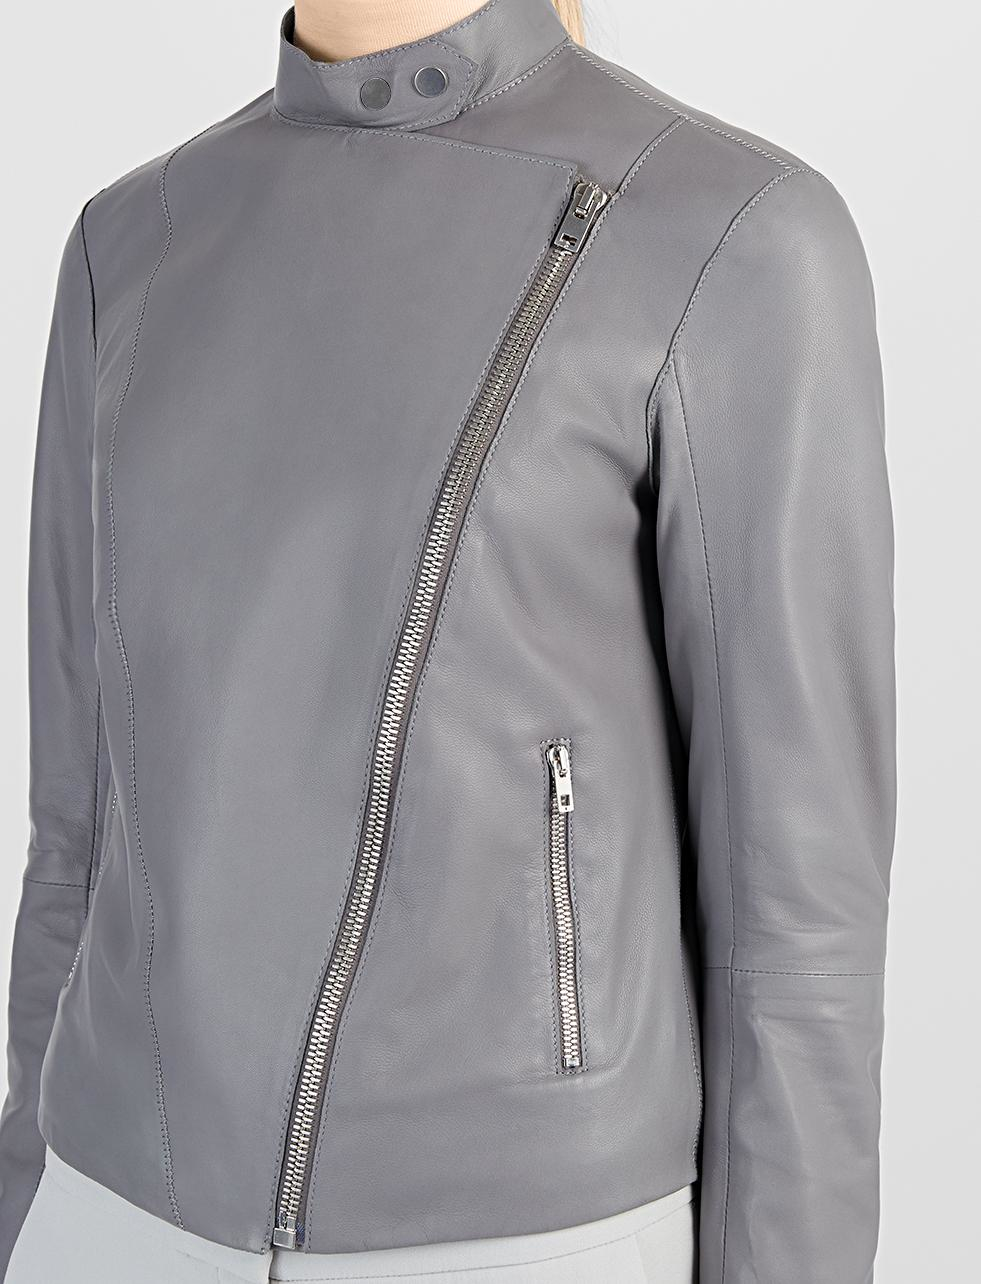 305e54c4d JOSEPH Nappa Leather New Alpha Jacket in Gray - Lyst